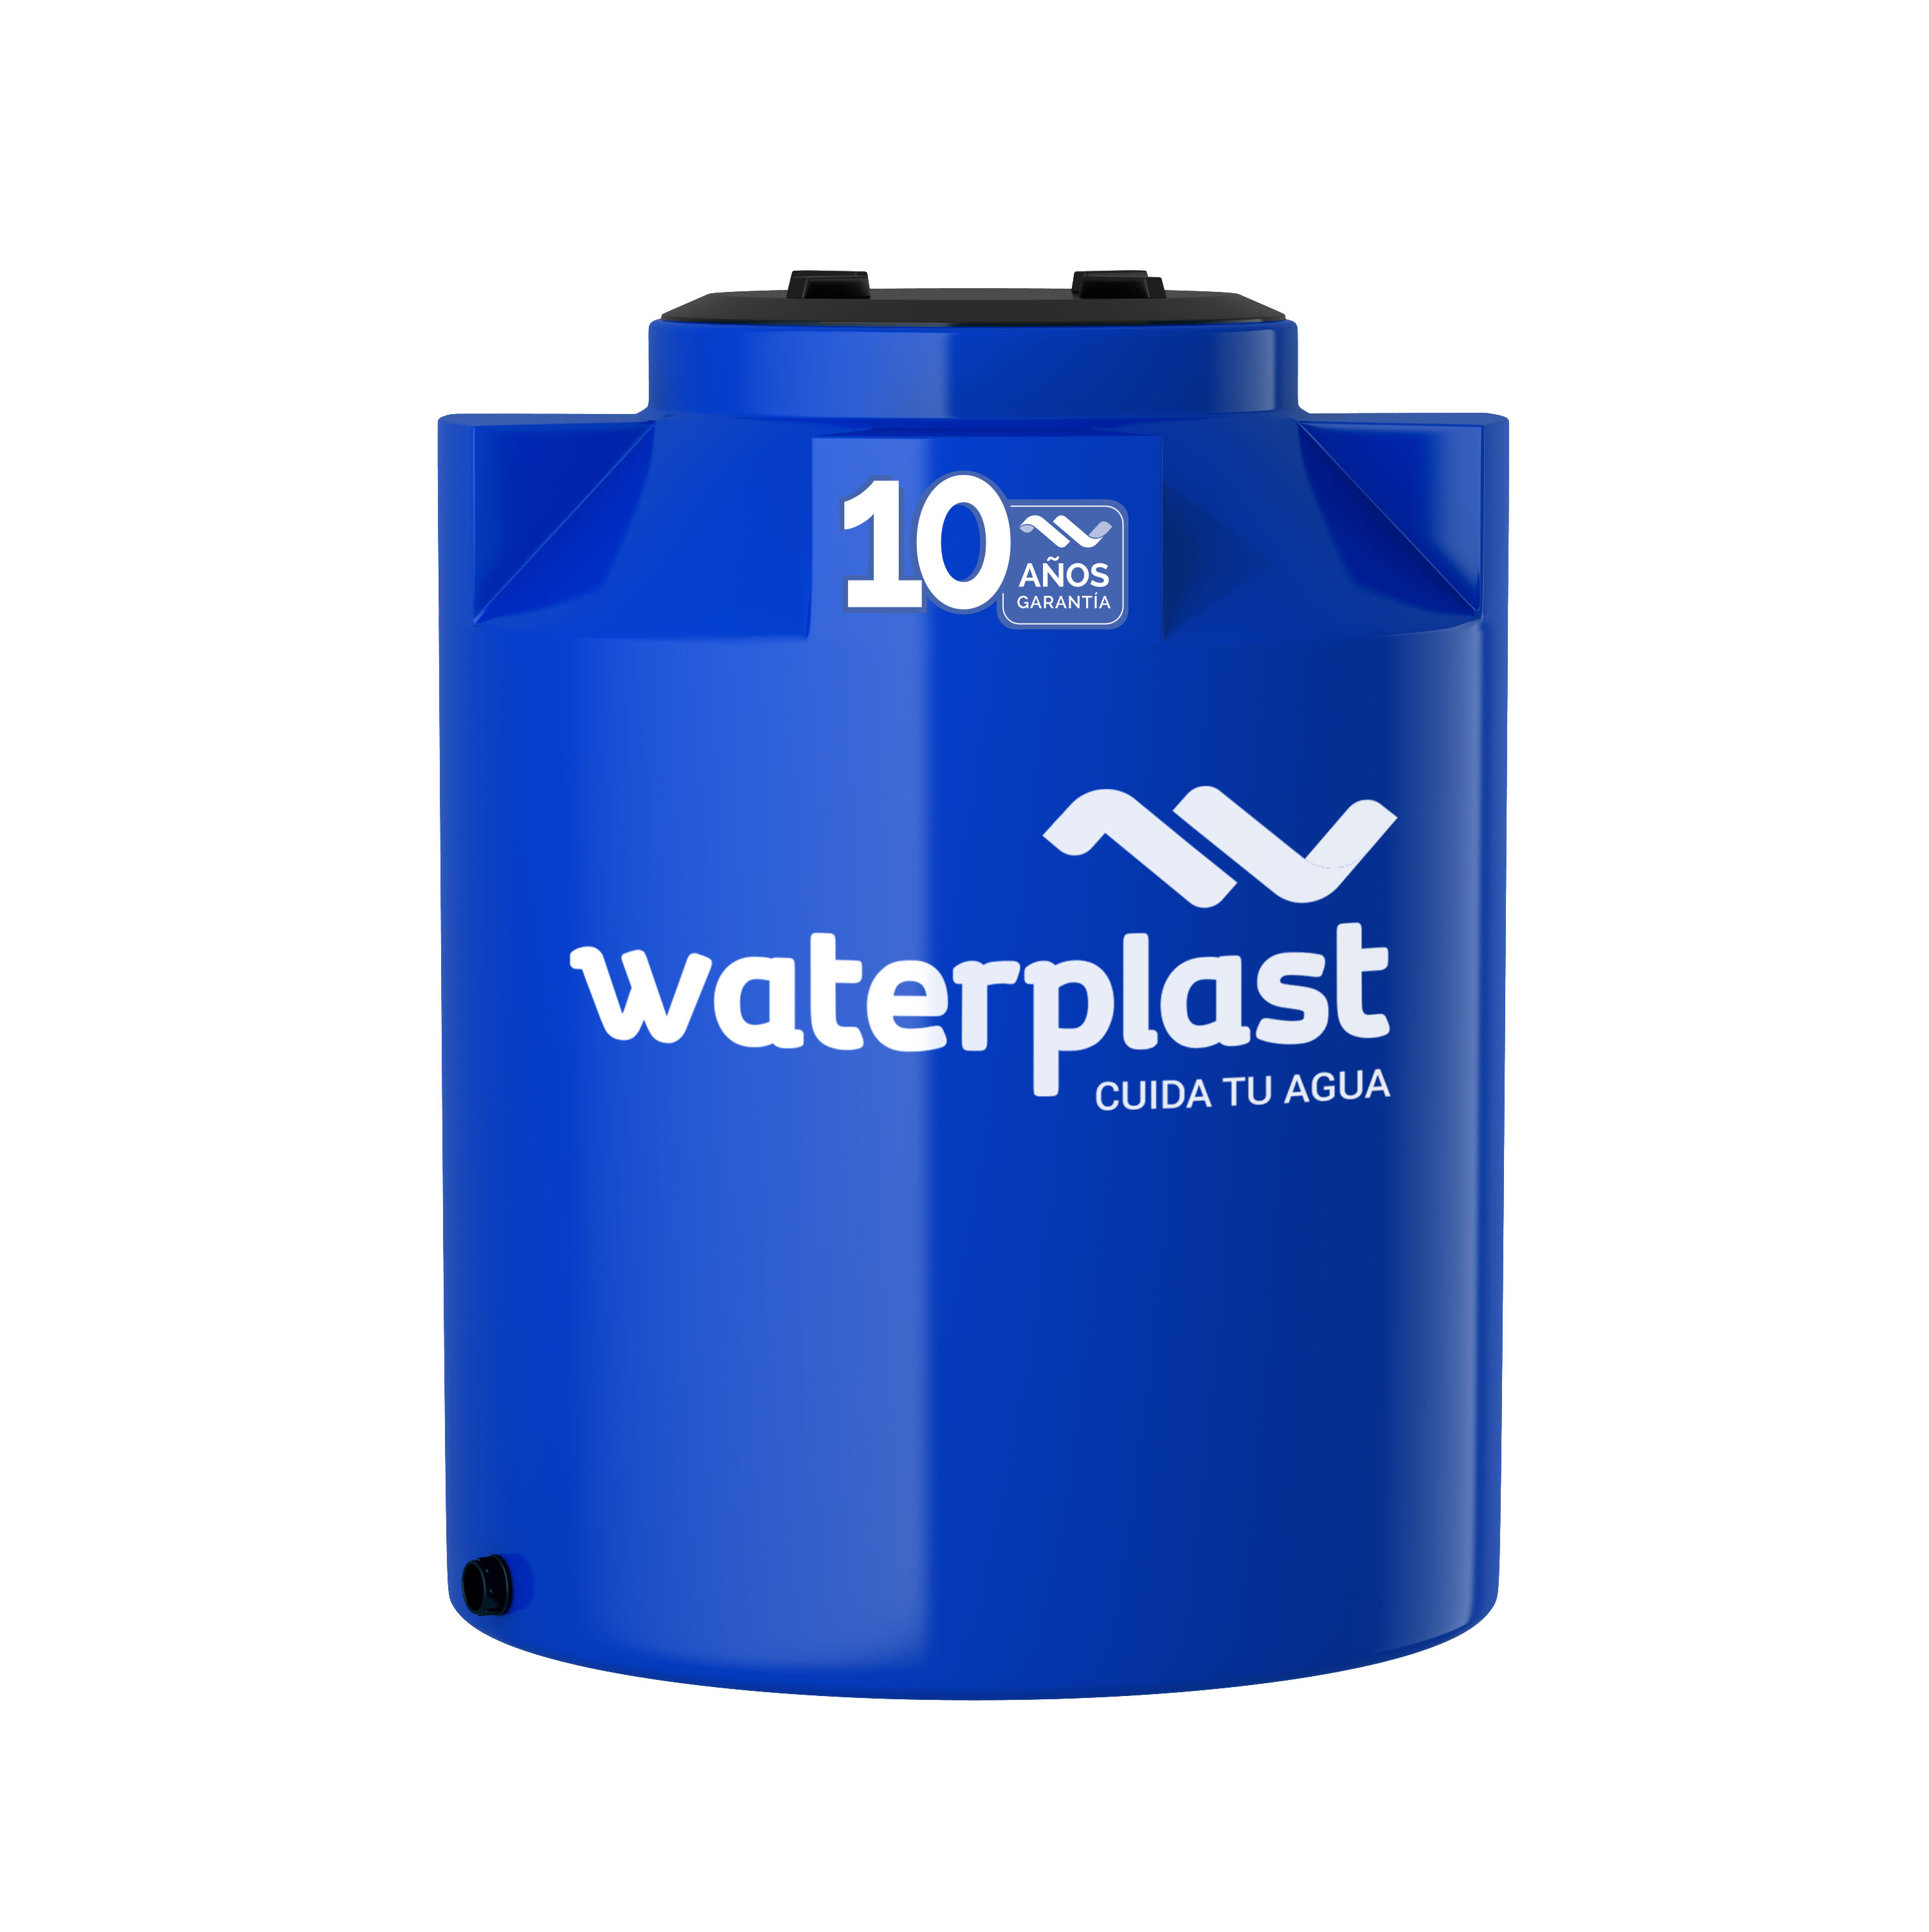 Tanque Cisterna 600 Lts Waterplast